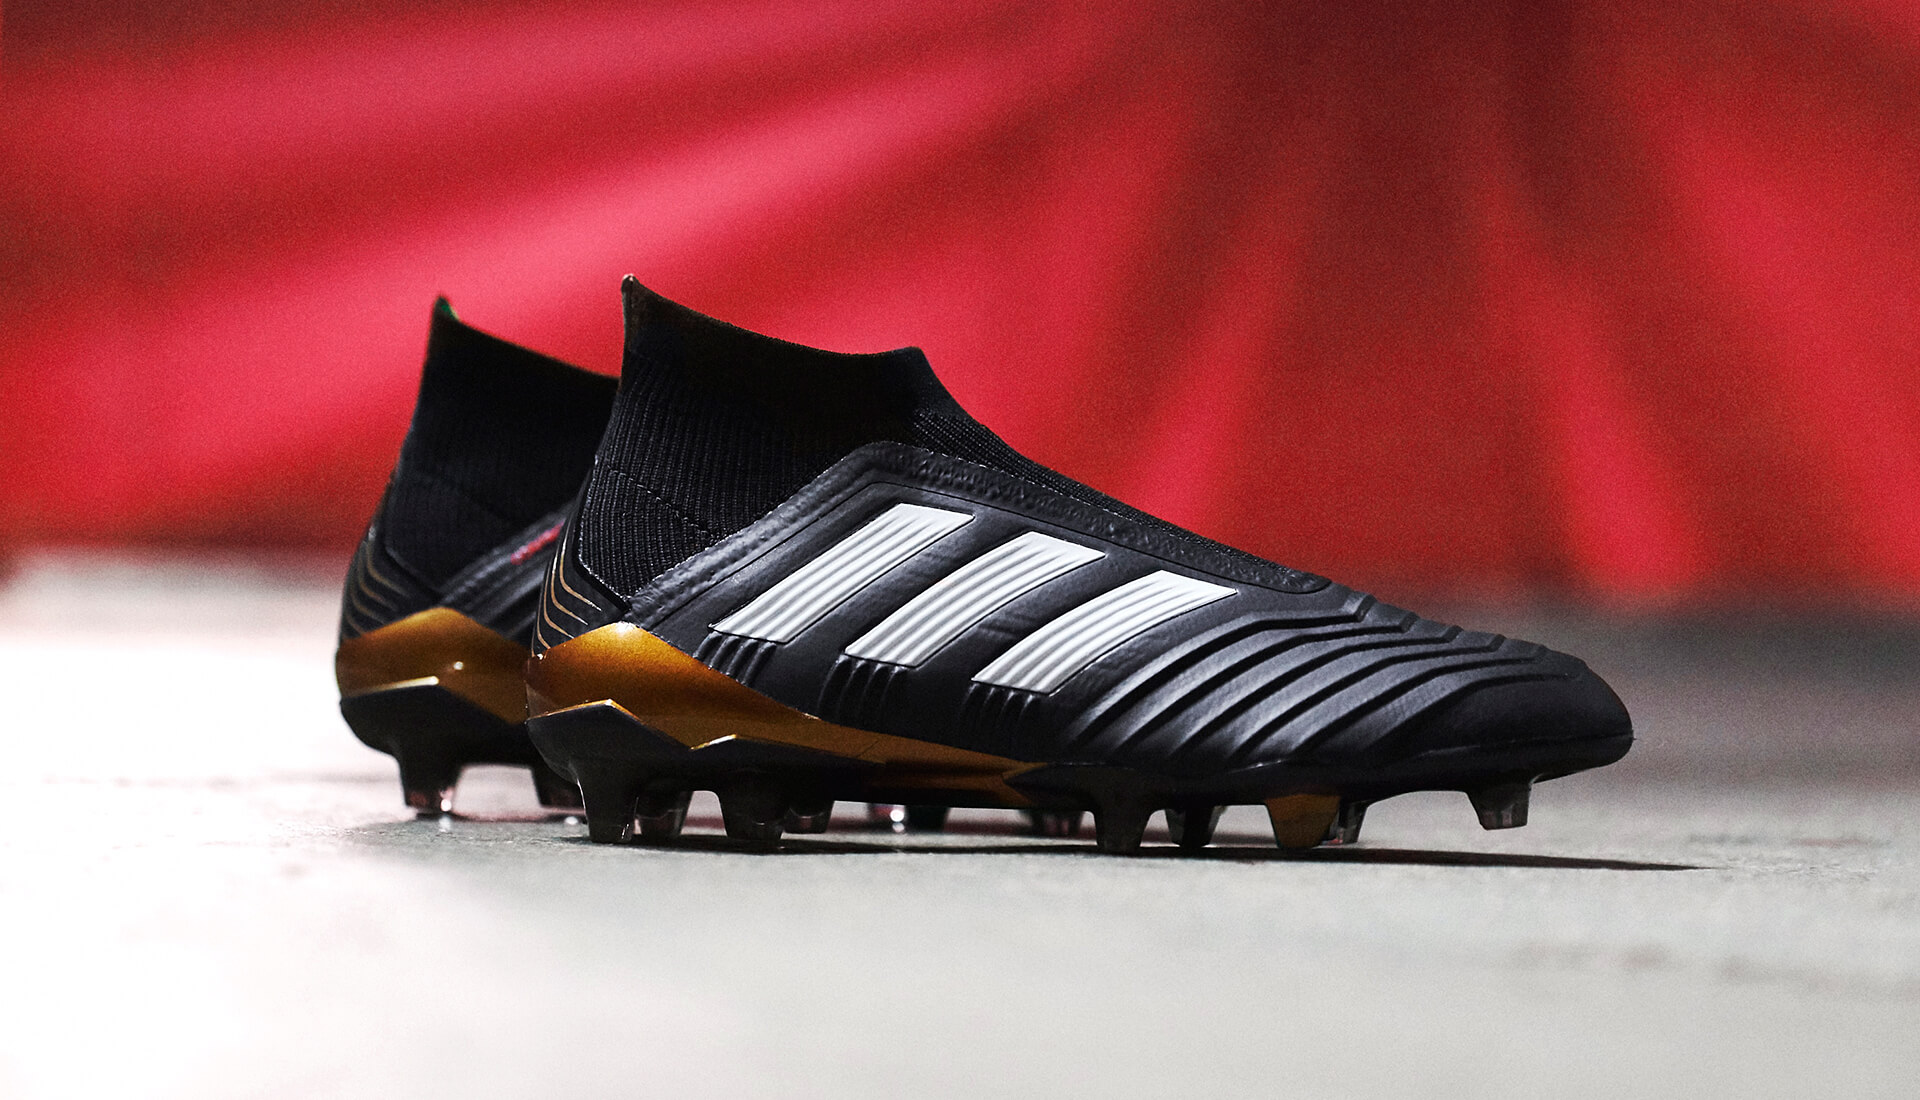 614716b7a46f adidas Launch the Predator 18+ Football Boots - SoccerBible.